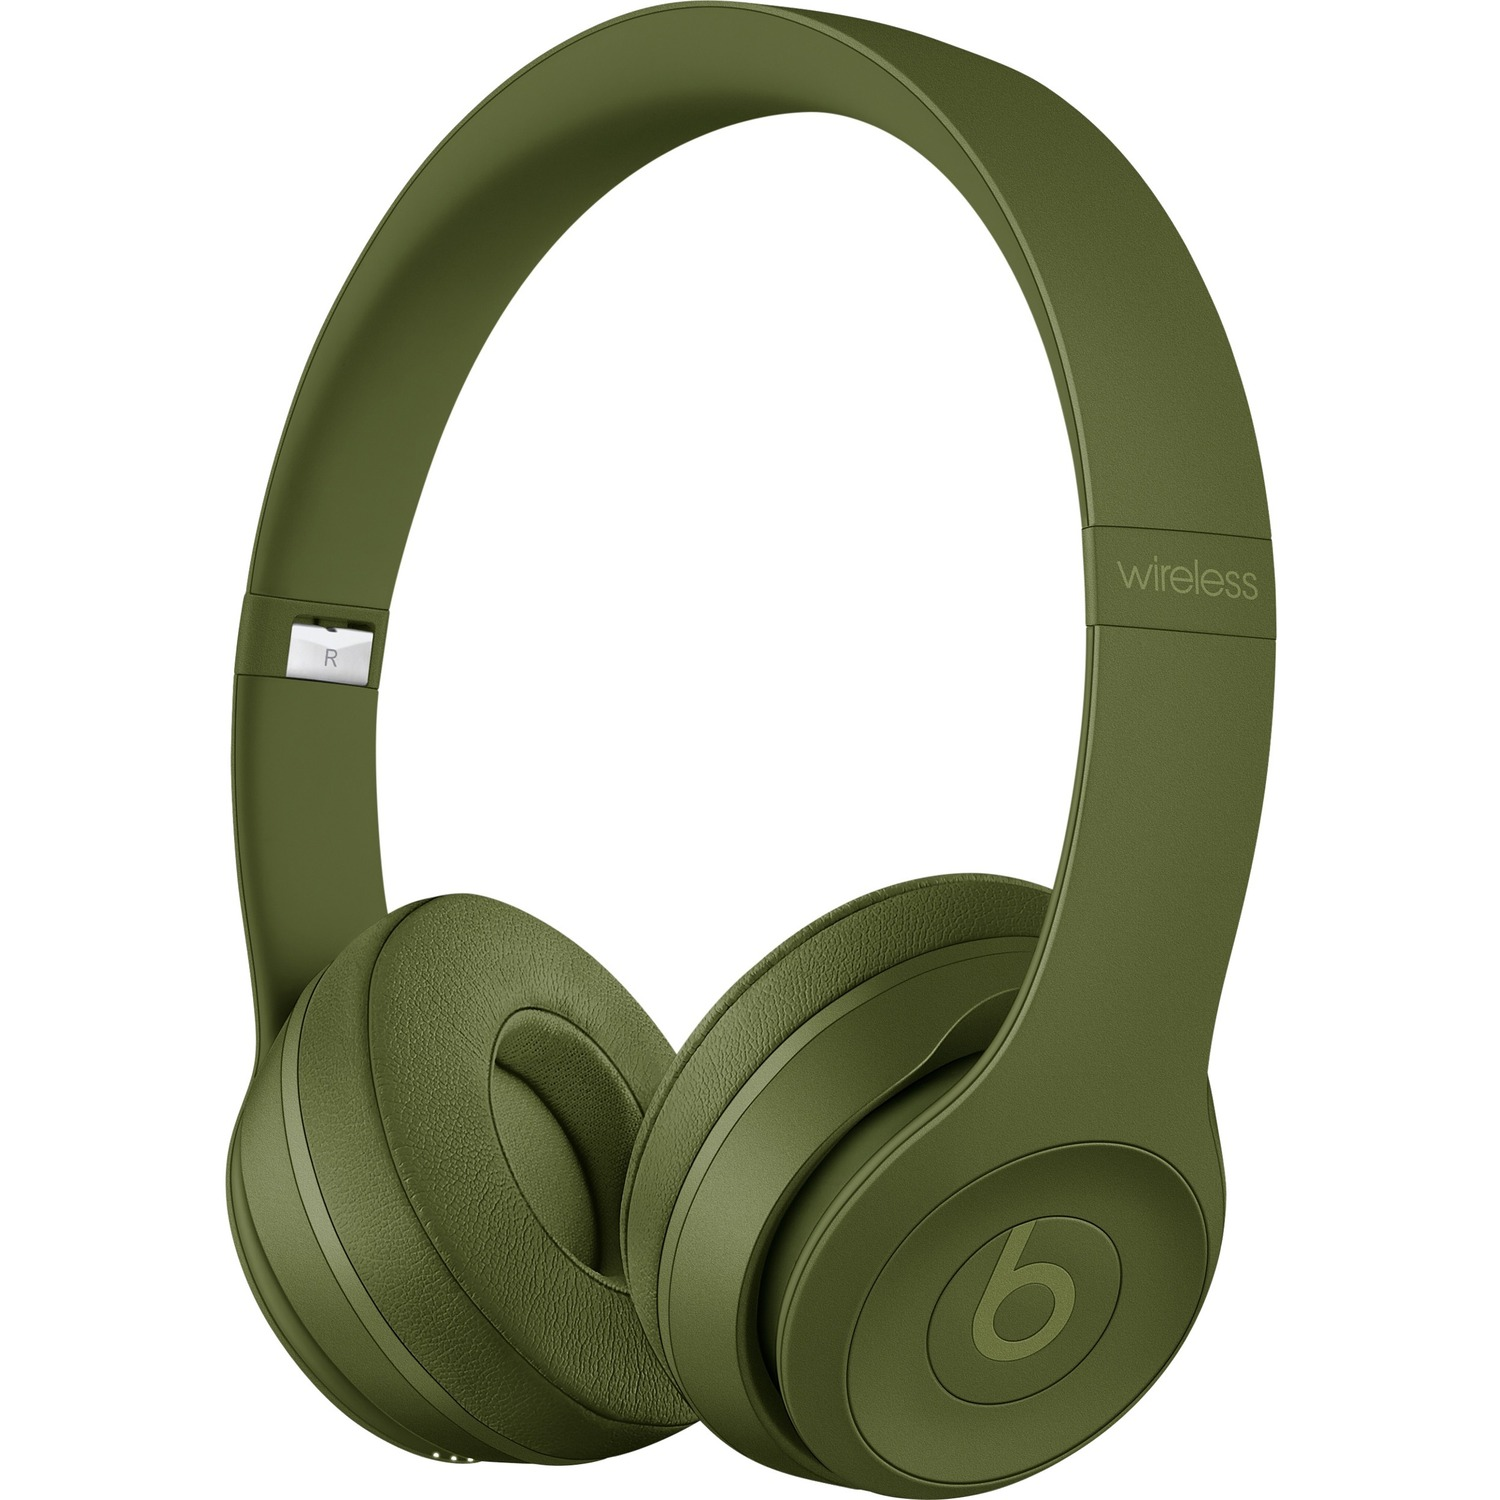 Beats by Dr. Dre Solo3 Wired/Wireless Bluetooth Stereo Headset - Over-the-head - Circumaural - Turf Green